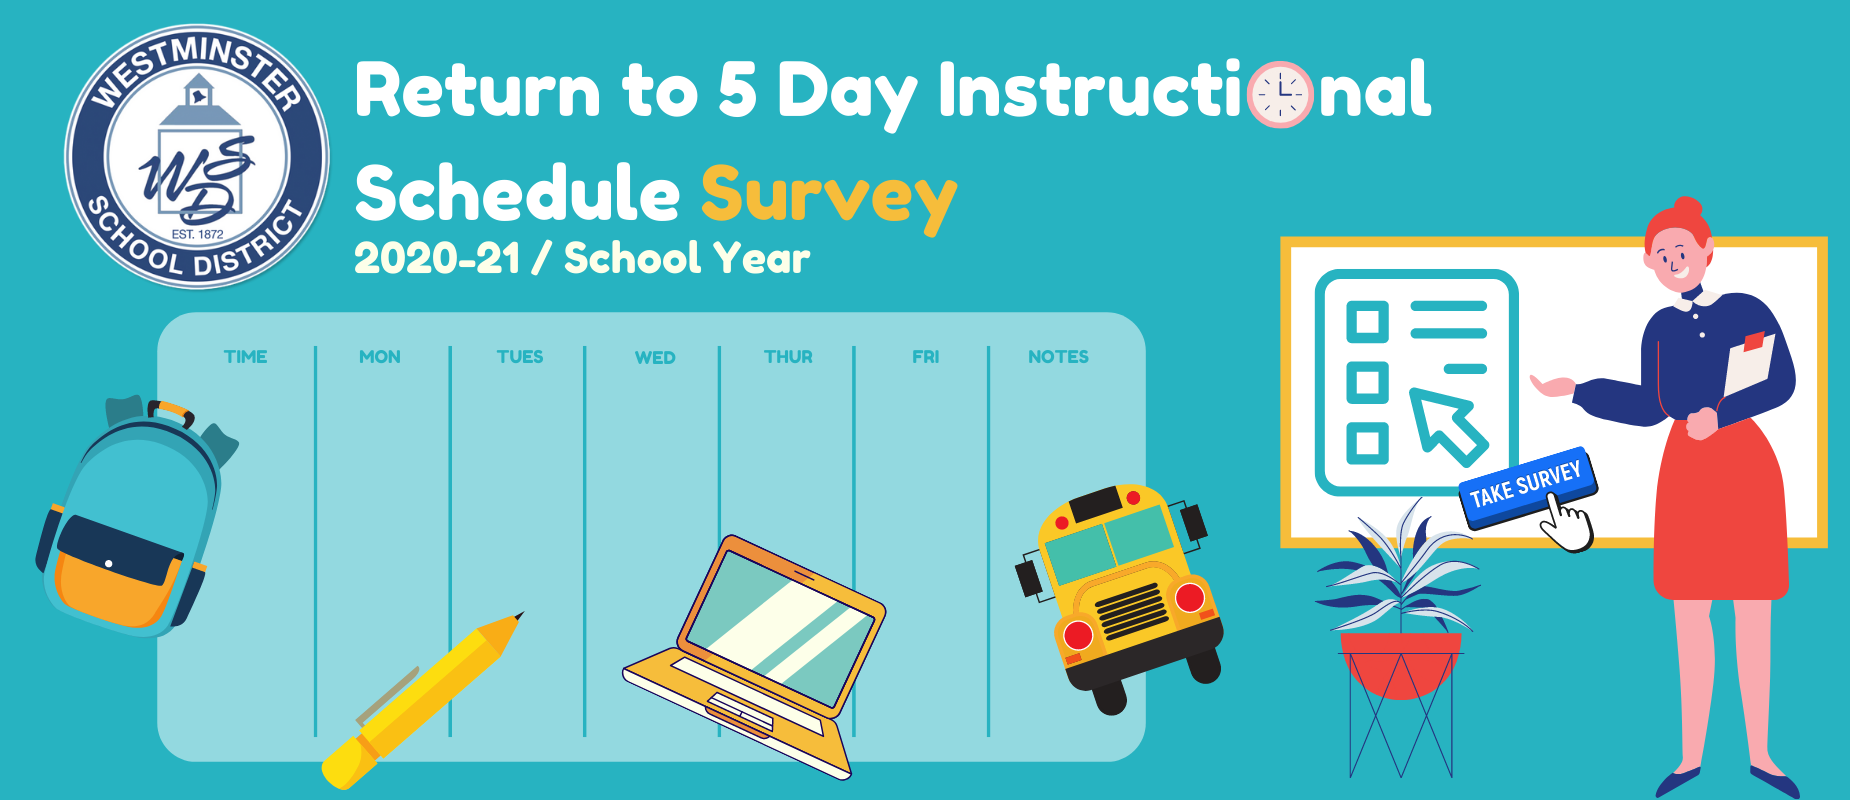 Return to 5 Day Instructional Schedule Survey